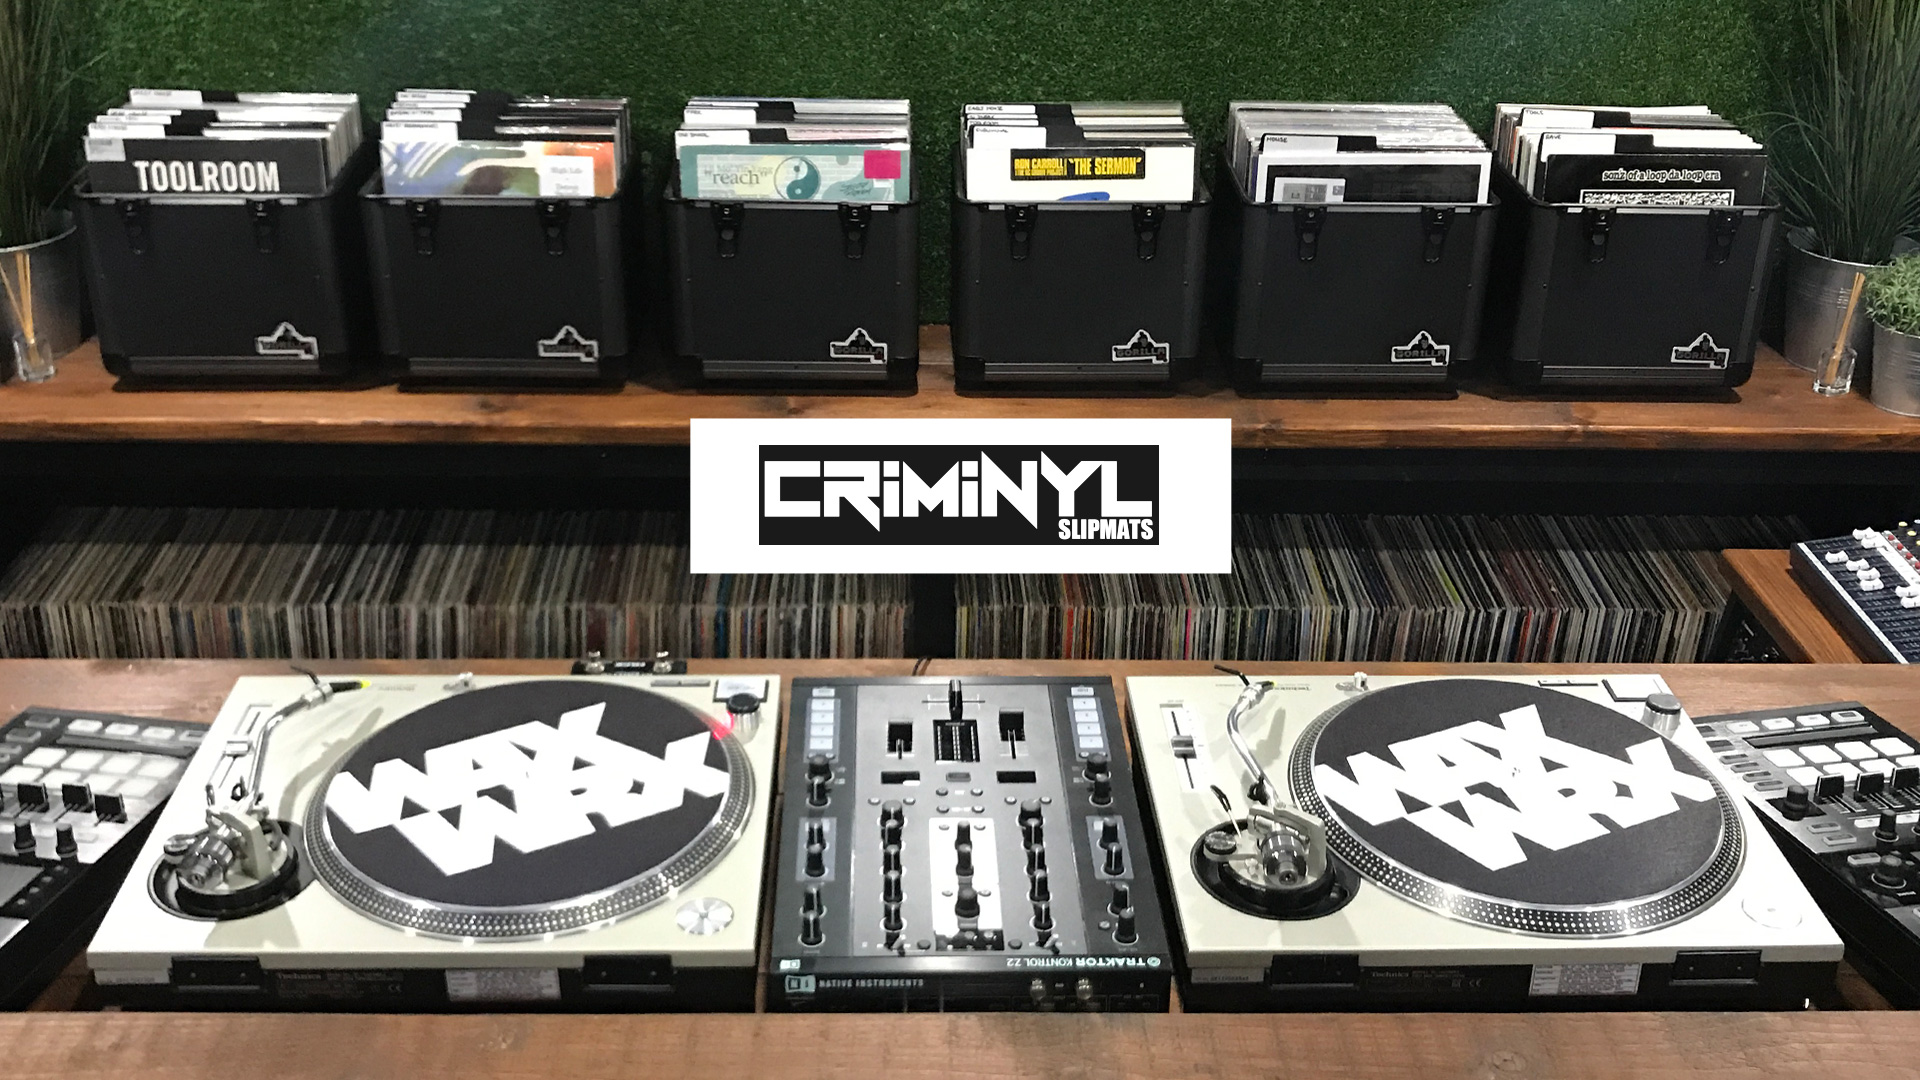 Introducing Criminyl Slipmats